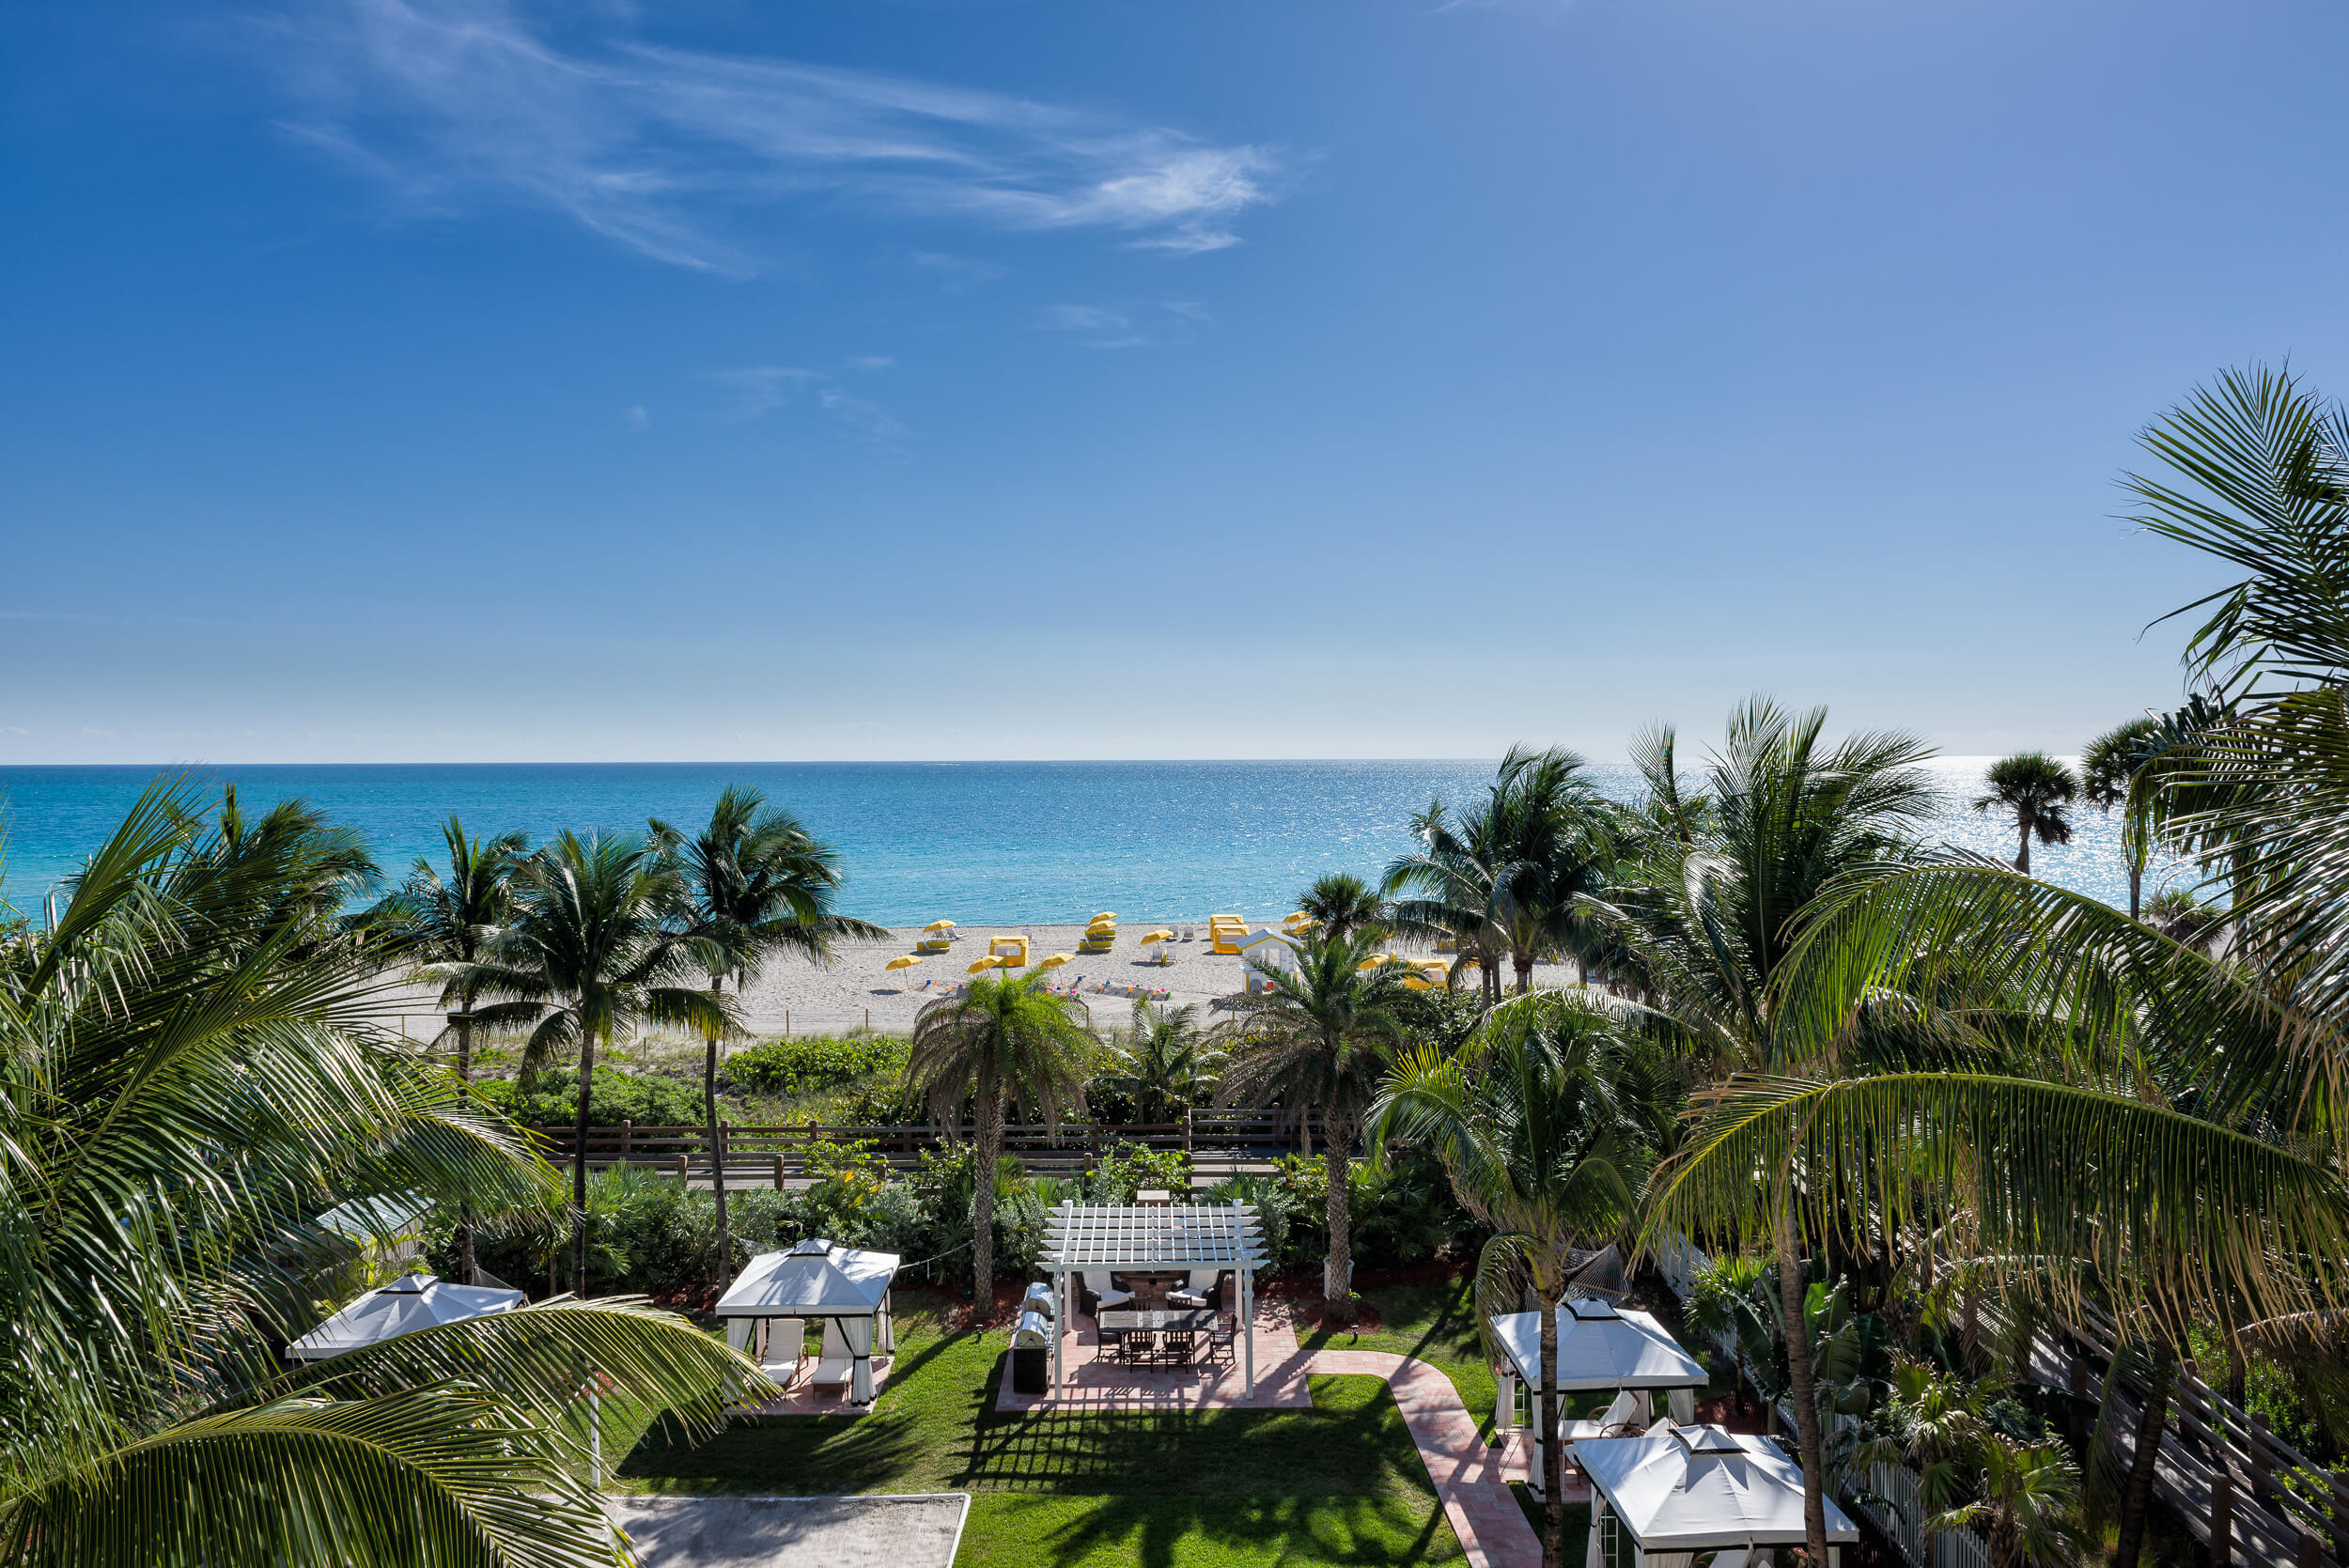 Oceanfront hotels in Miami Beach Florida | Westgate South Beach Oceanfront Resort | Westgate Resorts